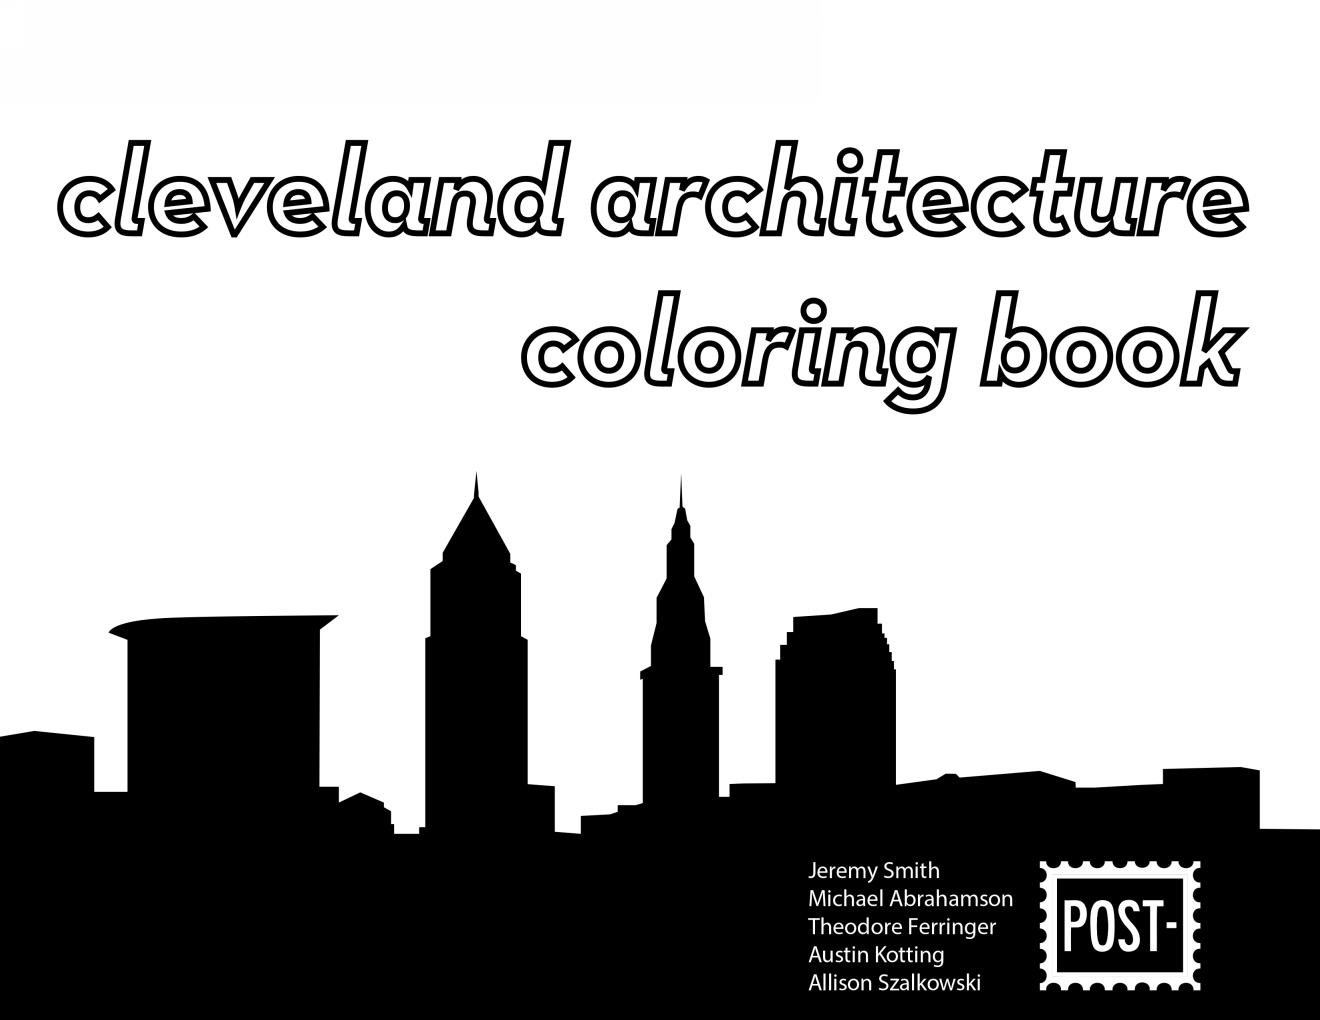 CLEVELAND ARCHITECTURE COLORING BOOK   1st Edition   > See More